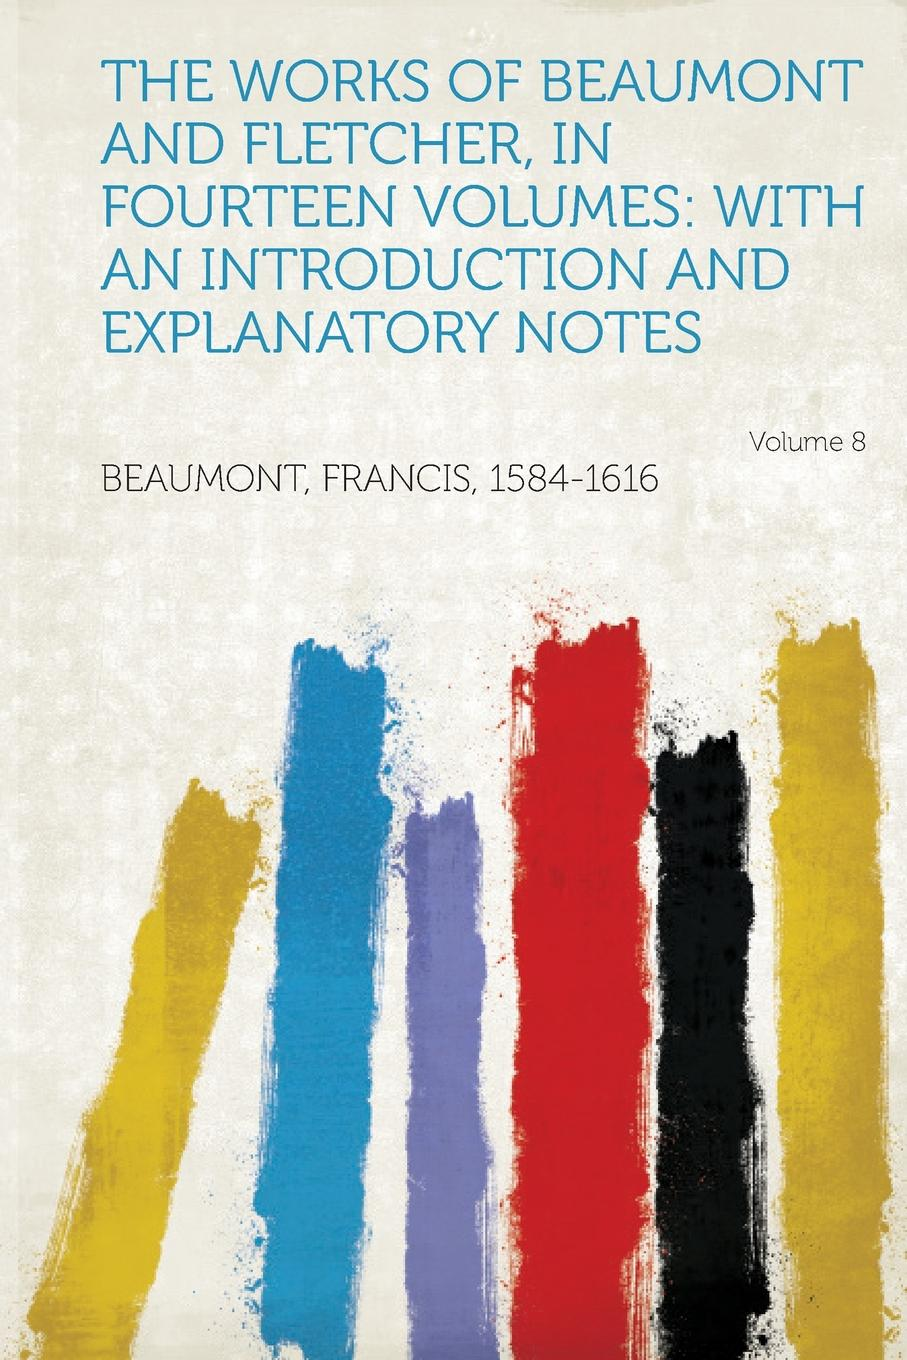 Francis Beaumont The Works of Beaumont and Fletcher, in Fourteen Volumes. With an Introduction and Explanatory Notes Volume 8 francis beaumont the works of beaumont and fletcher in fourteen volumes with an introduction and explanatory notes volume 2